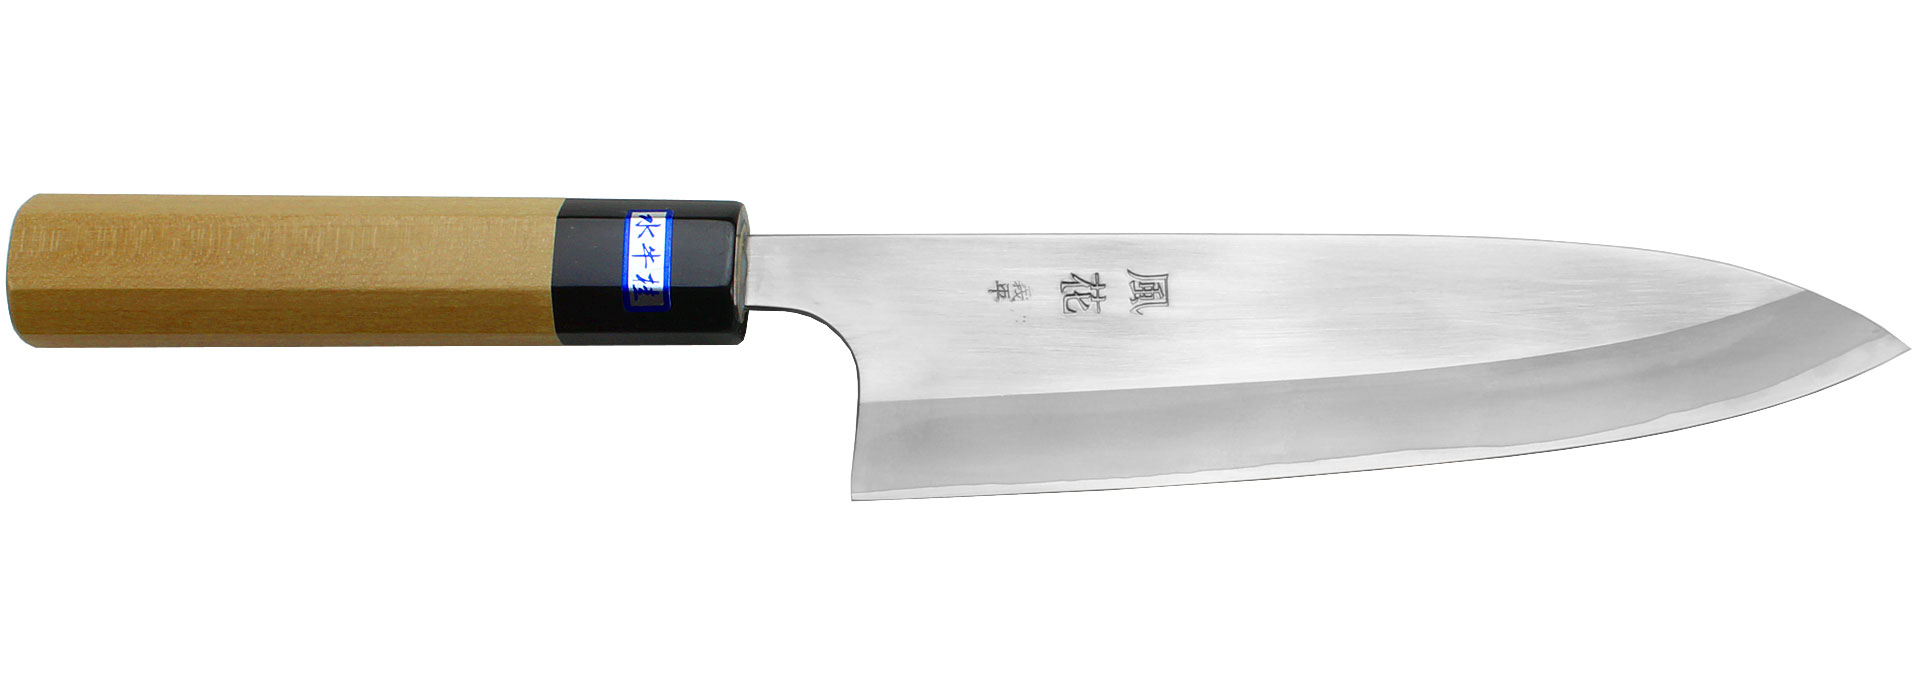 Japanese kitchen knives made of powder metallurgy high speed steel